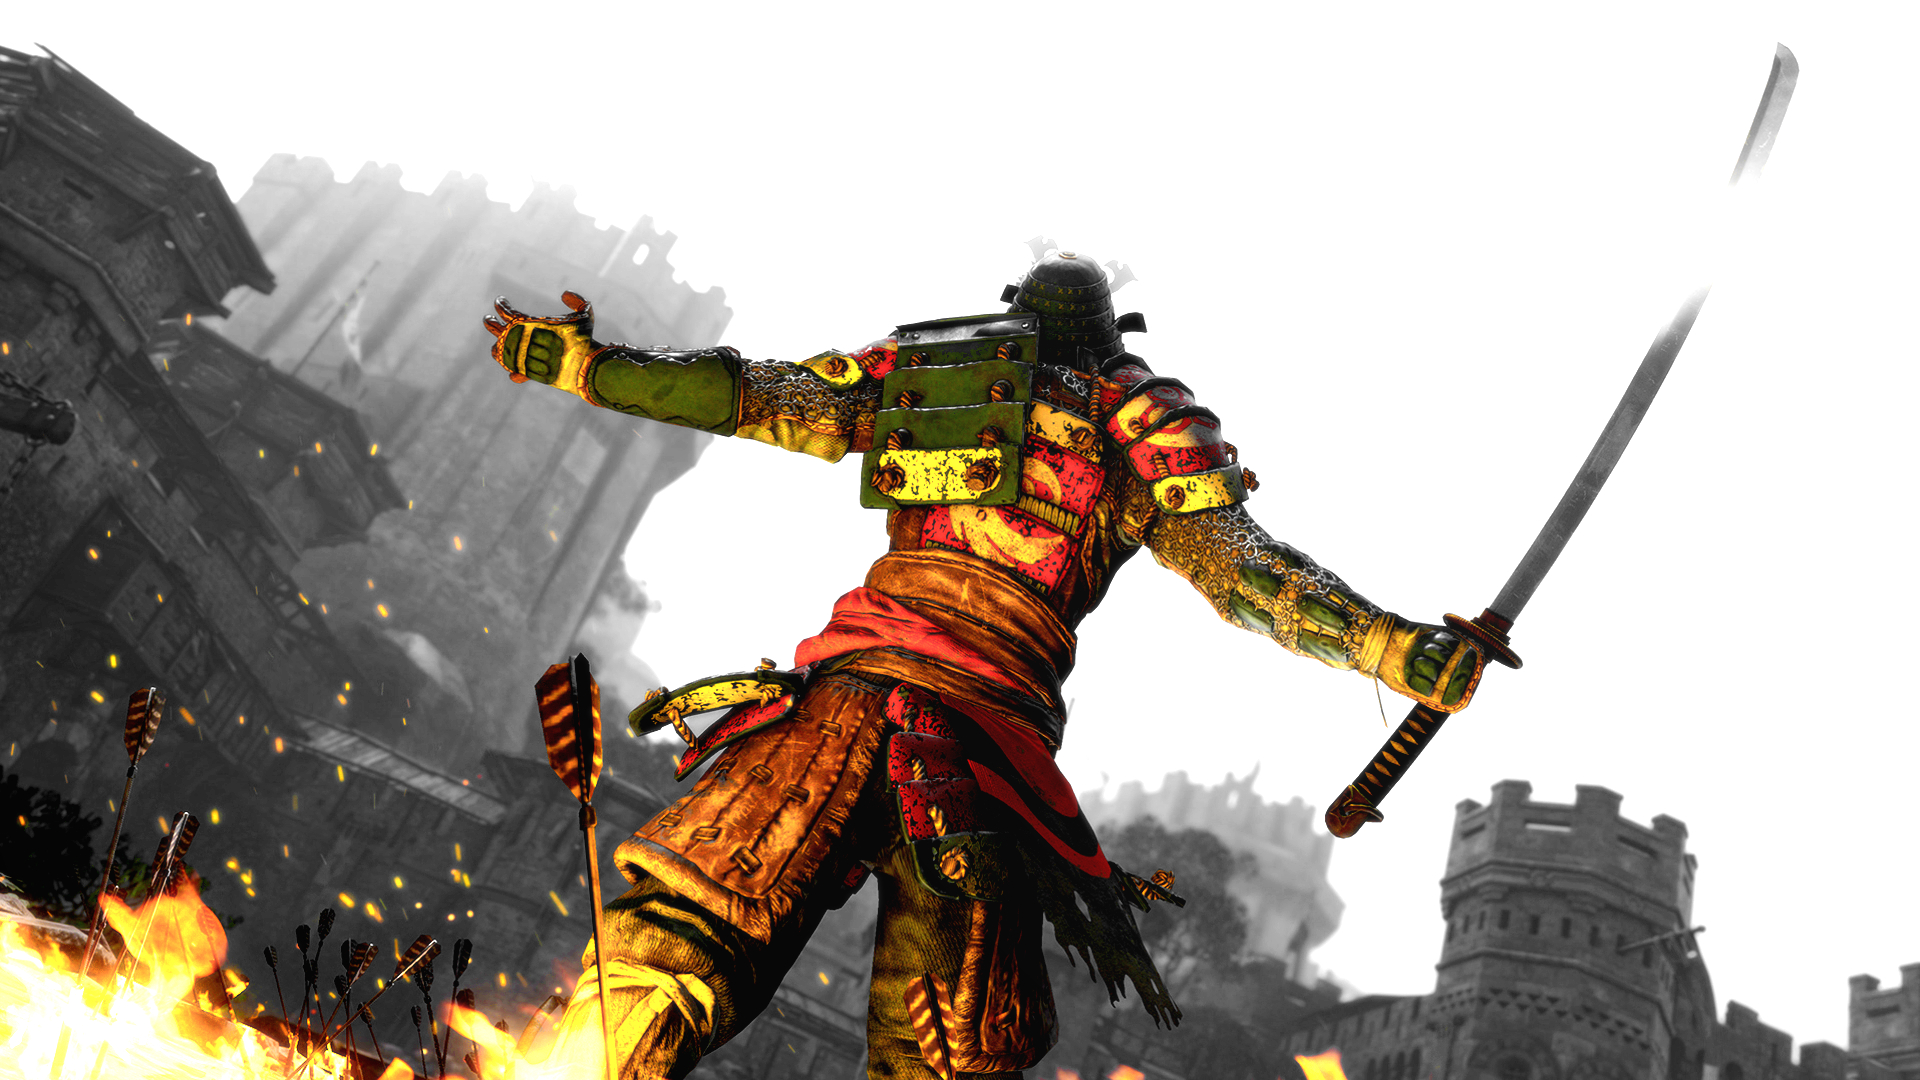 Hd Wallpaper 4k Girl For Honor Wallpapers Pictures Images